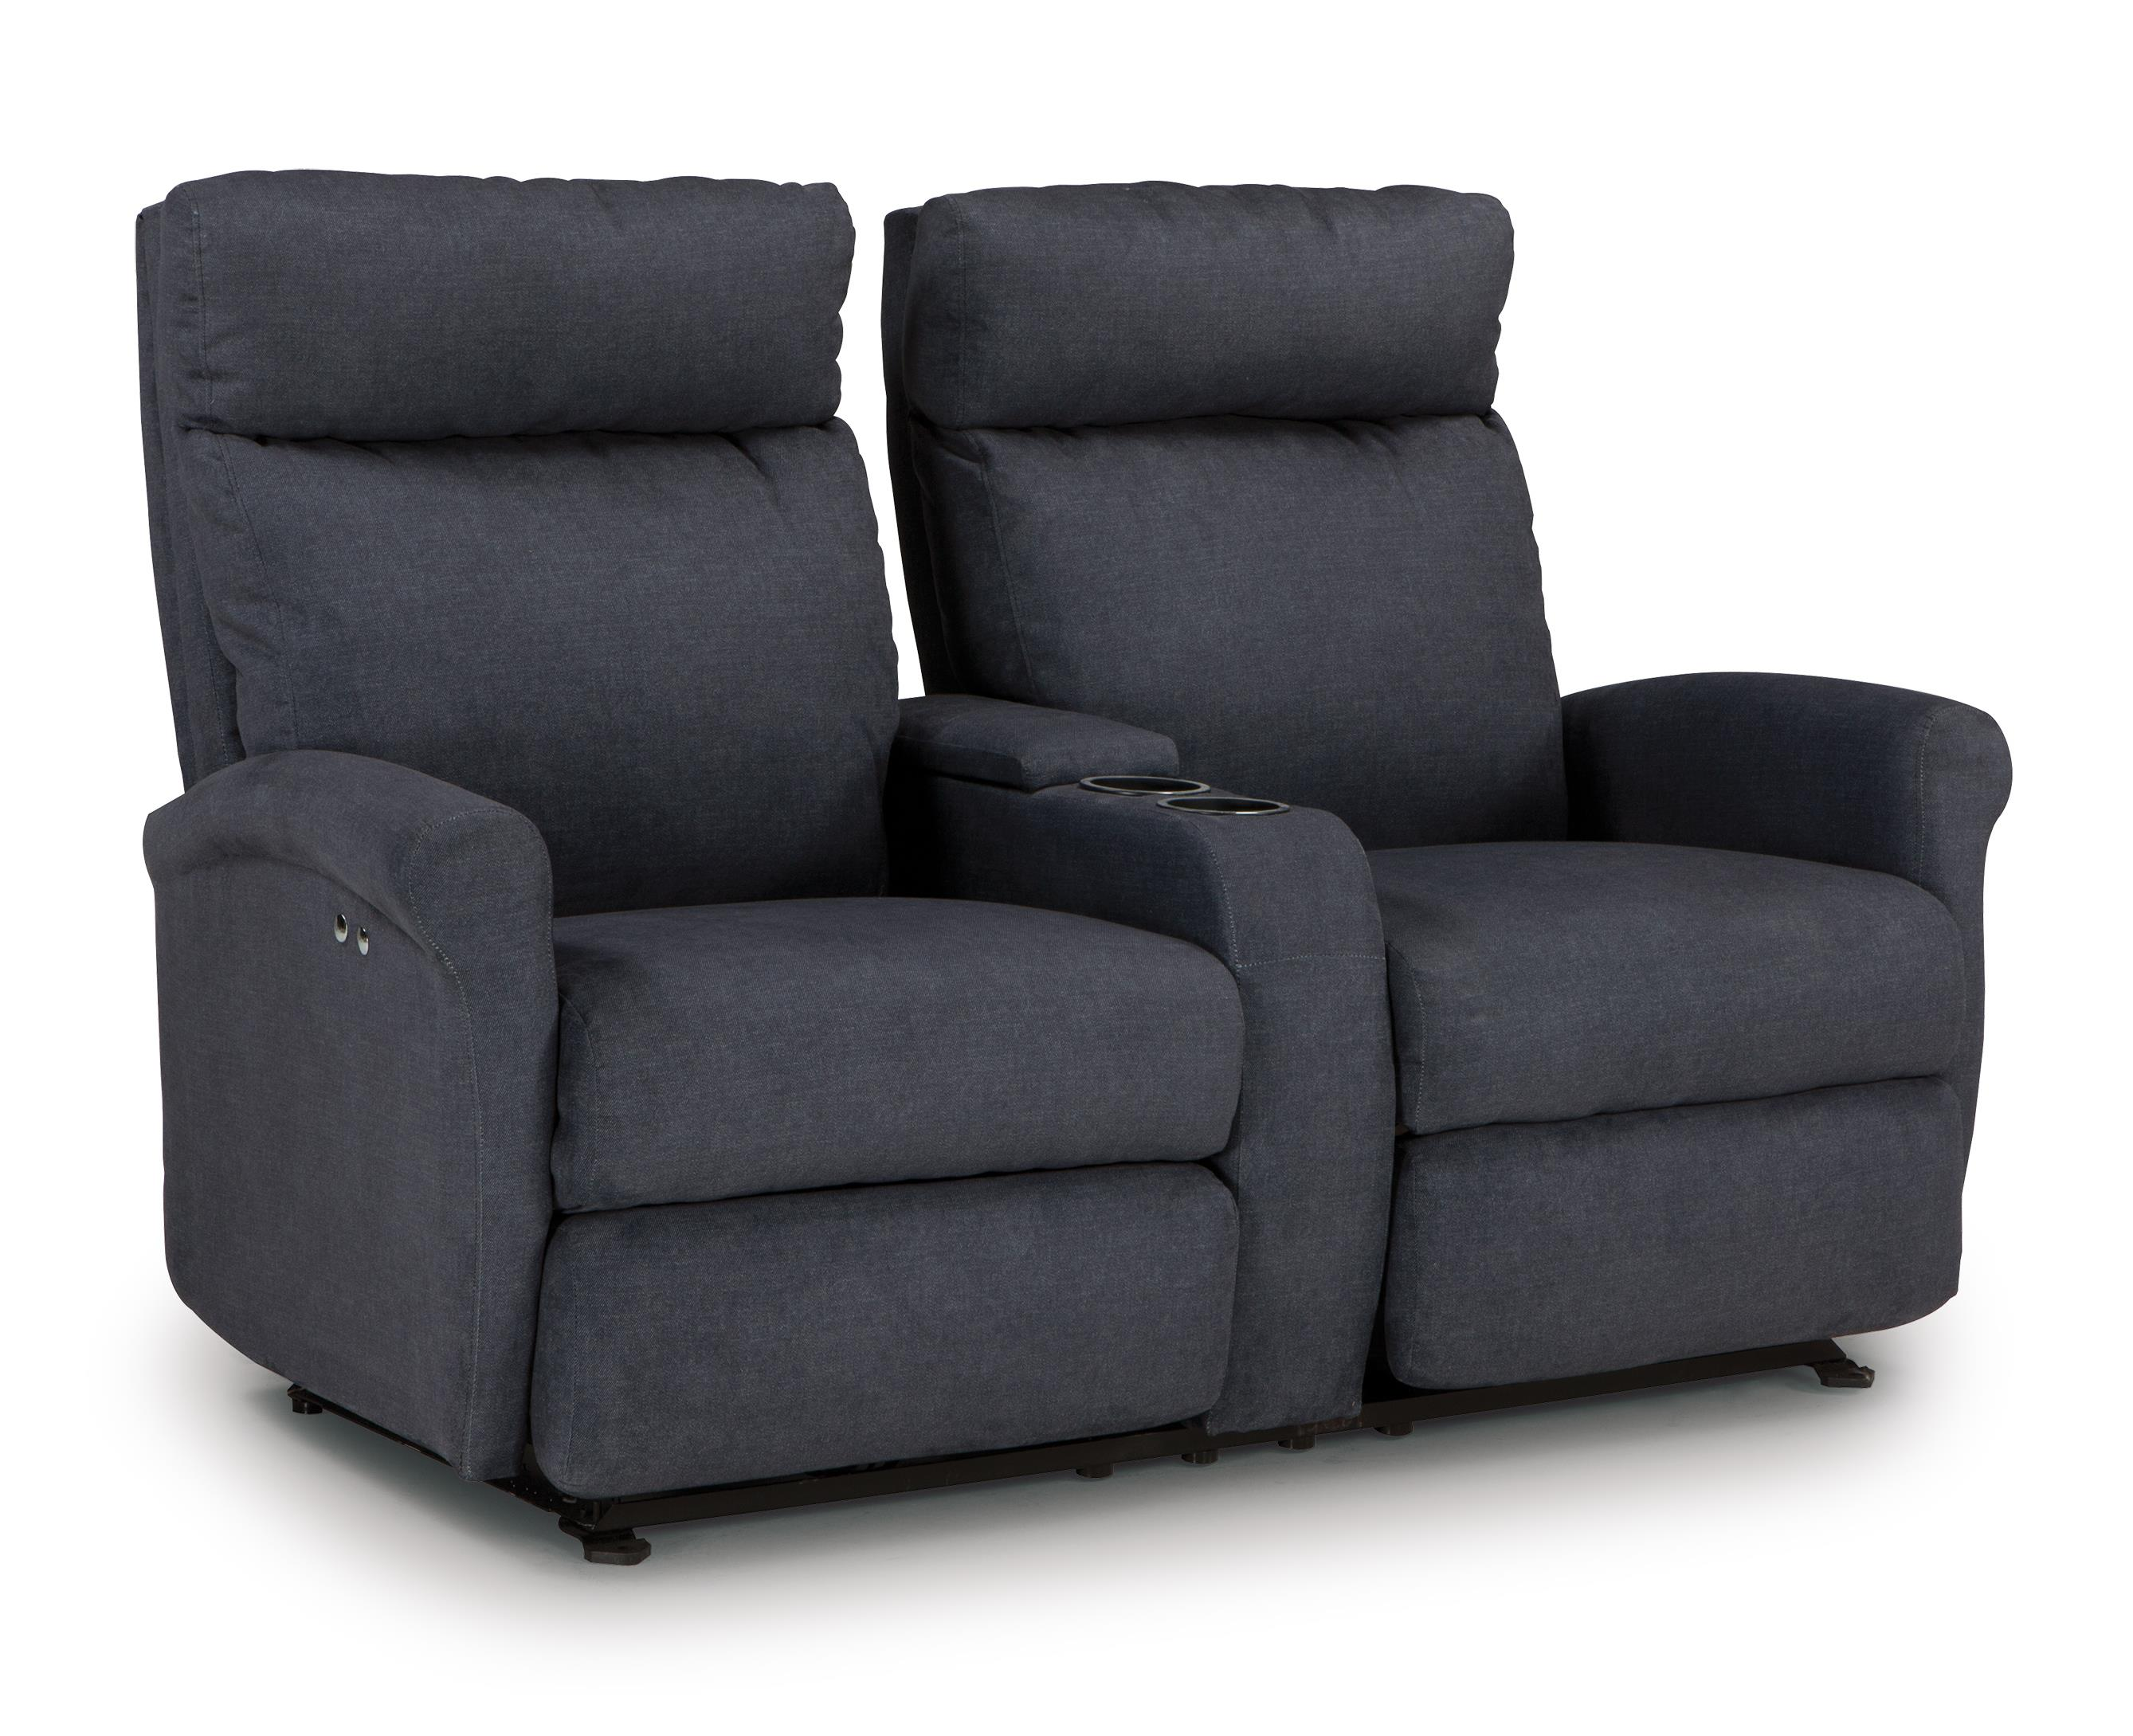 Best Home Furnishings Codie Power Rocking Reclining Loveseat With Storage Console And Cupholders